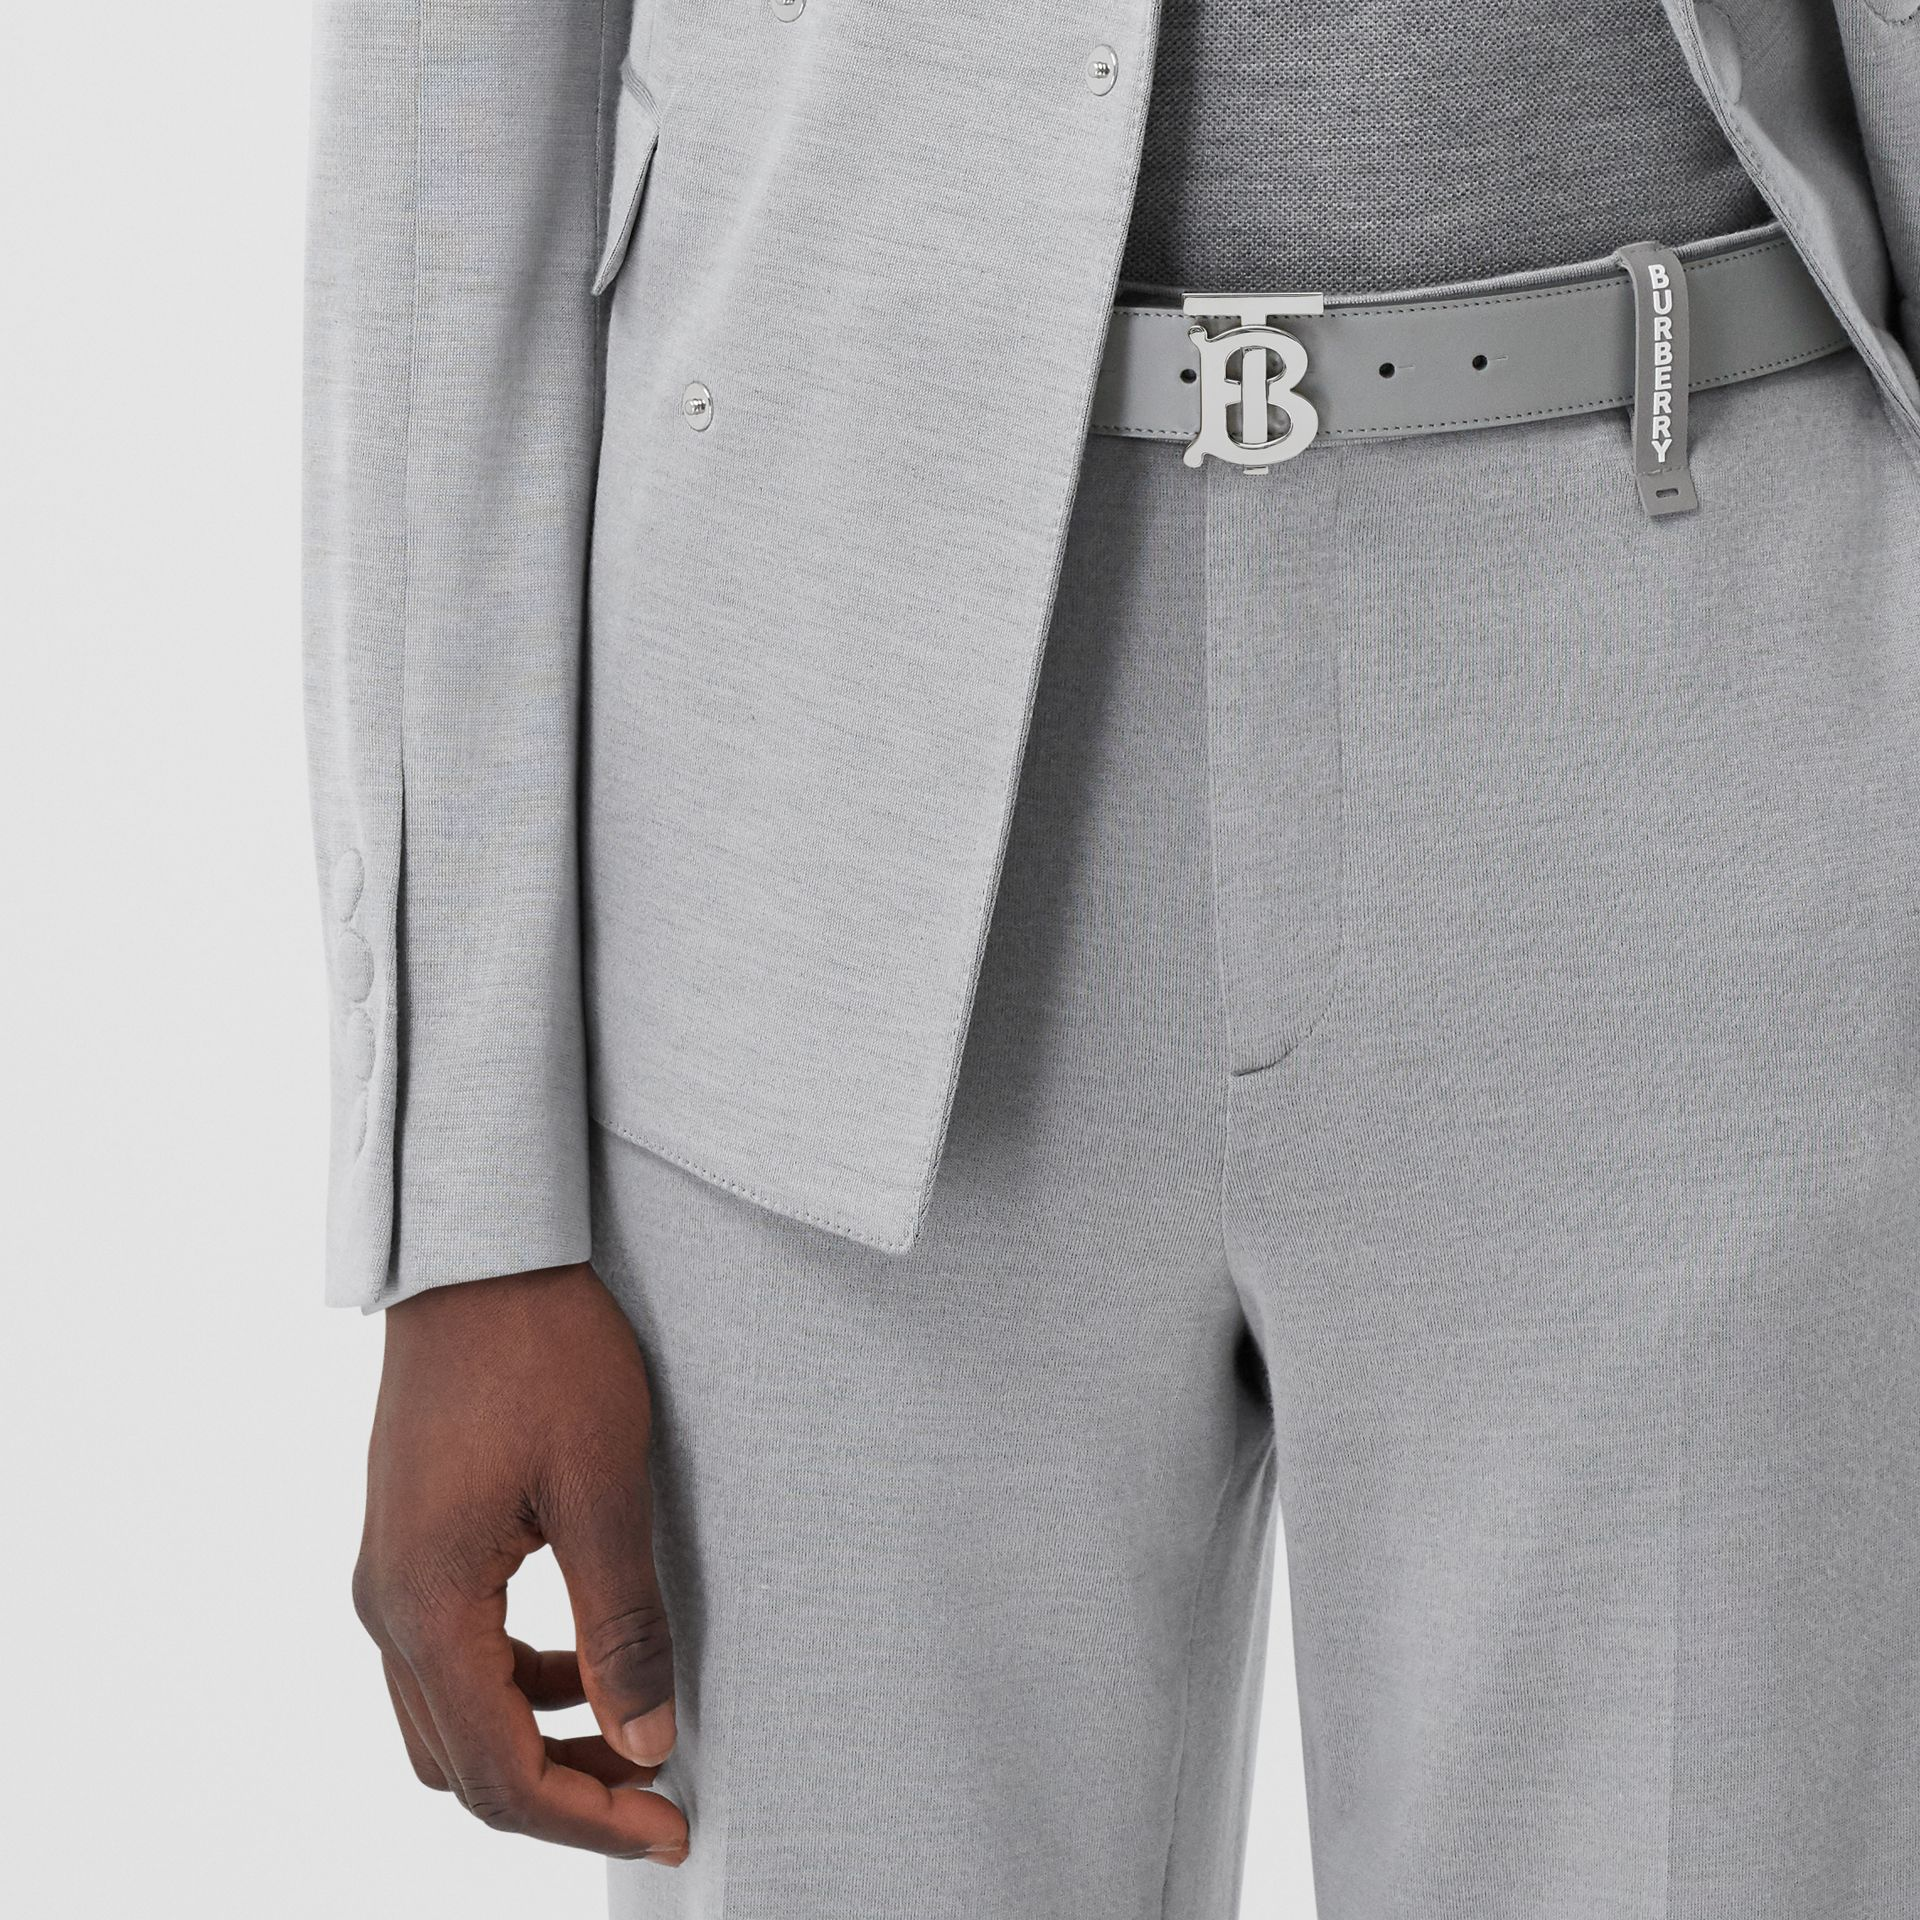 Monogram Motif Leather Belt in Cloud Grey - Men | Burberry - gallery image 2